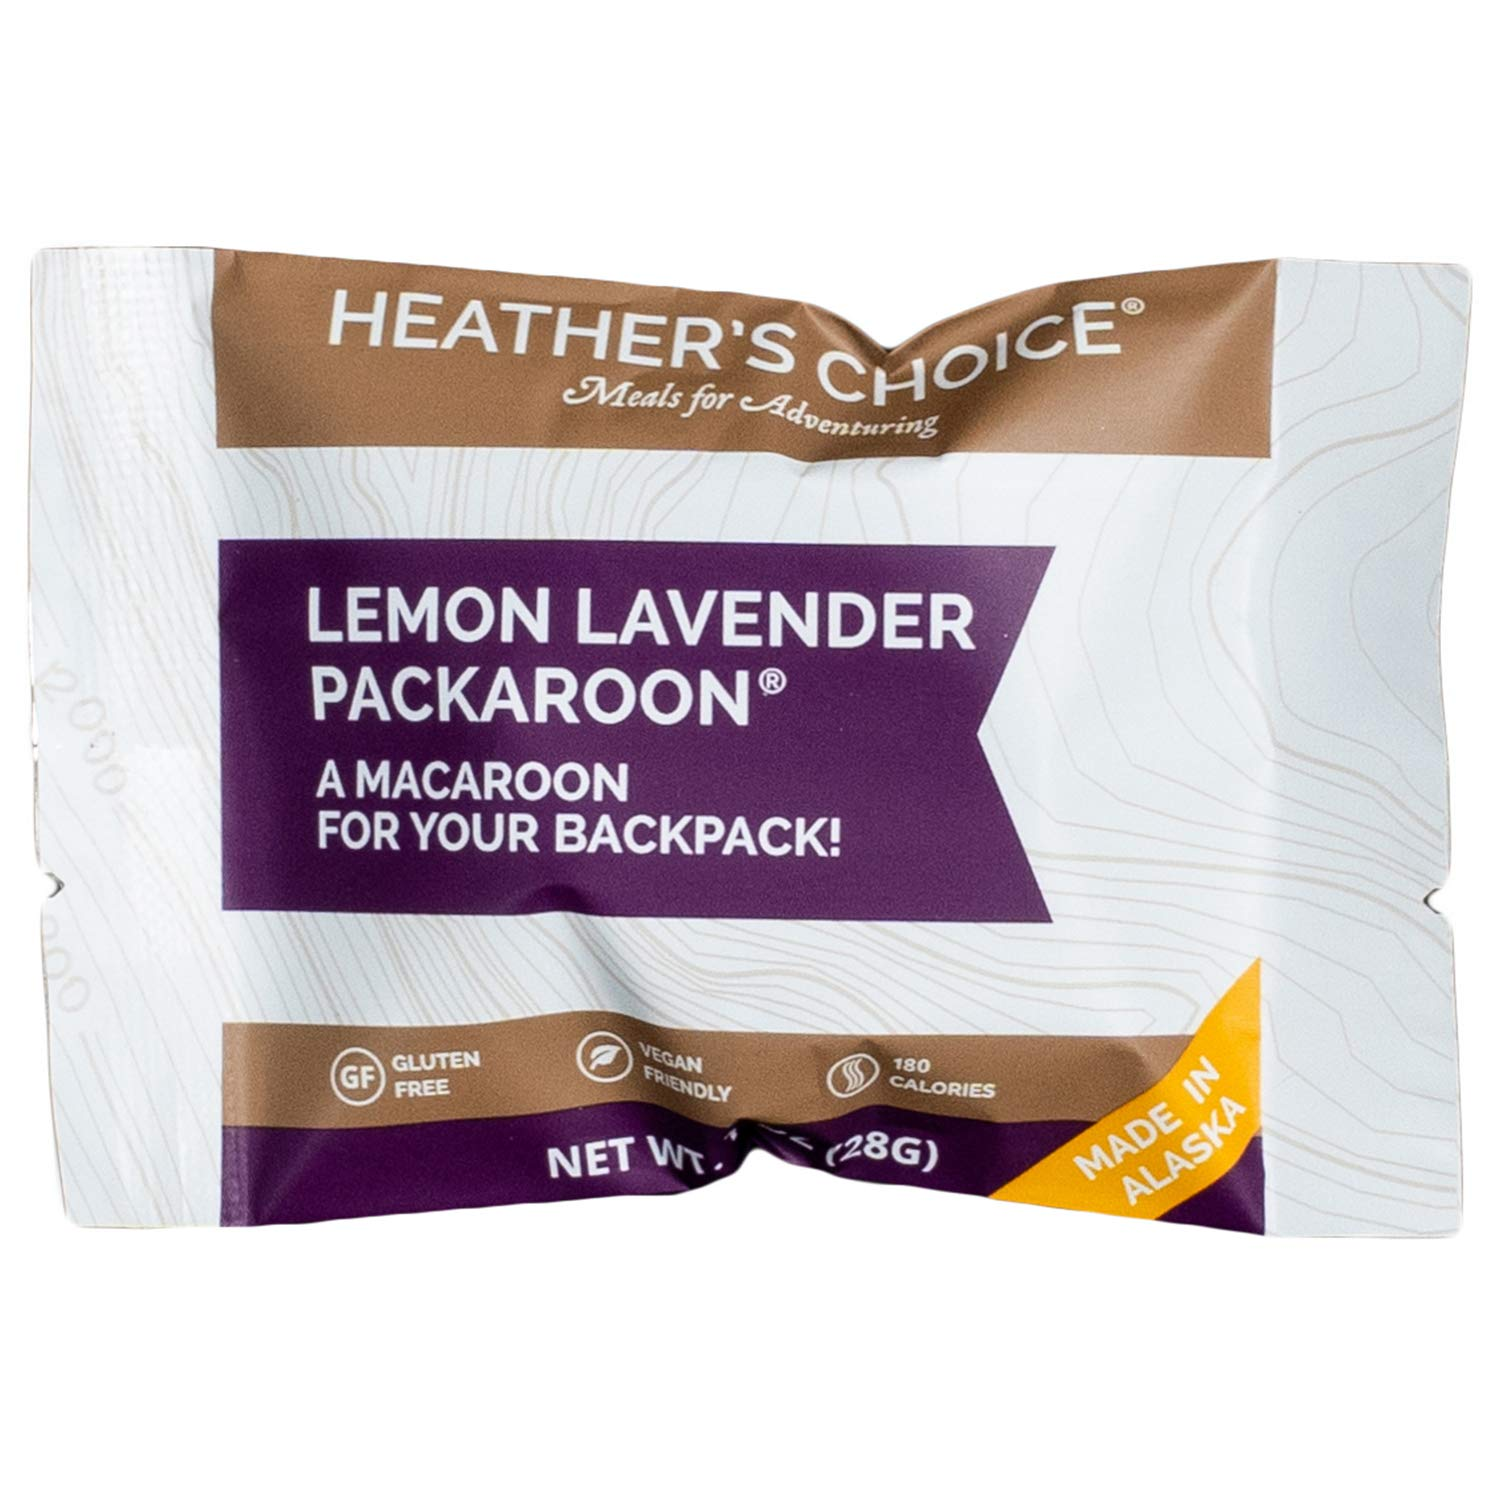 Heather's Choice Packaroons, Lemon Lavender, Wholesome, Gluten-Free, Allergen-Friendly Coconut Cookies for Backpacking, Camping, Hunting and Travel